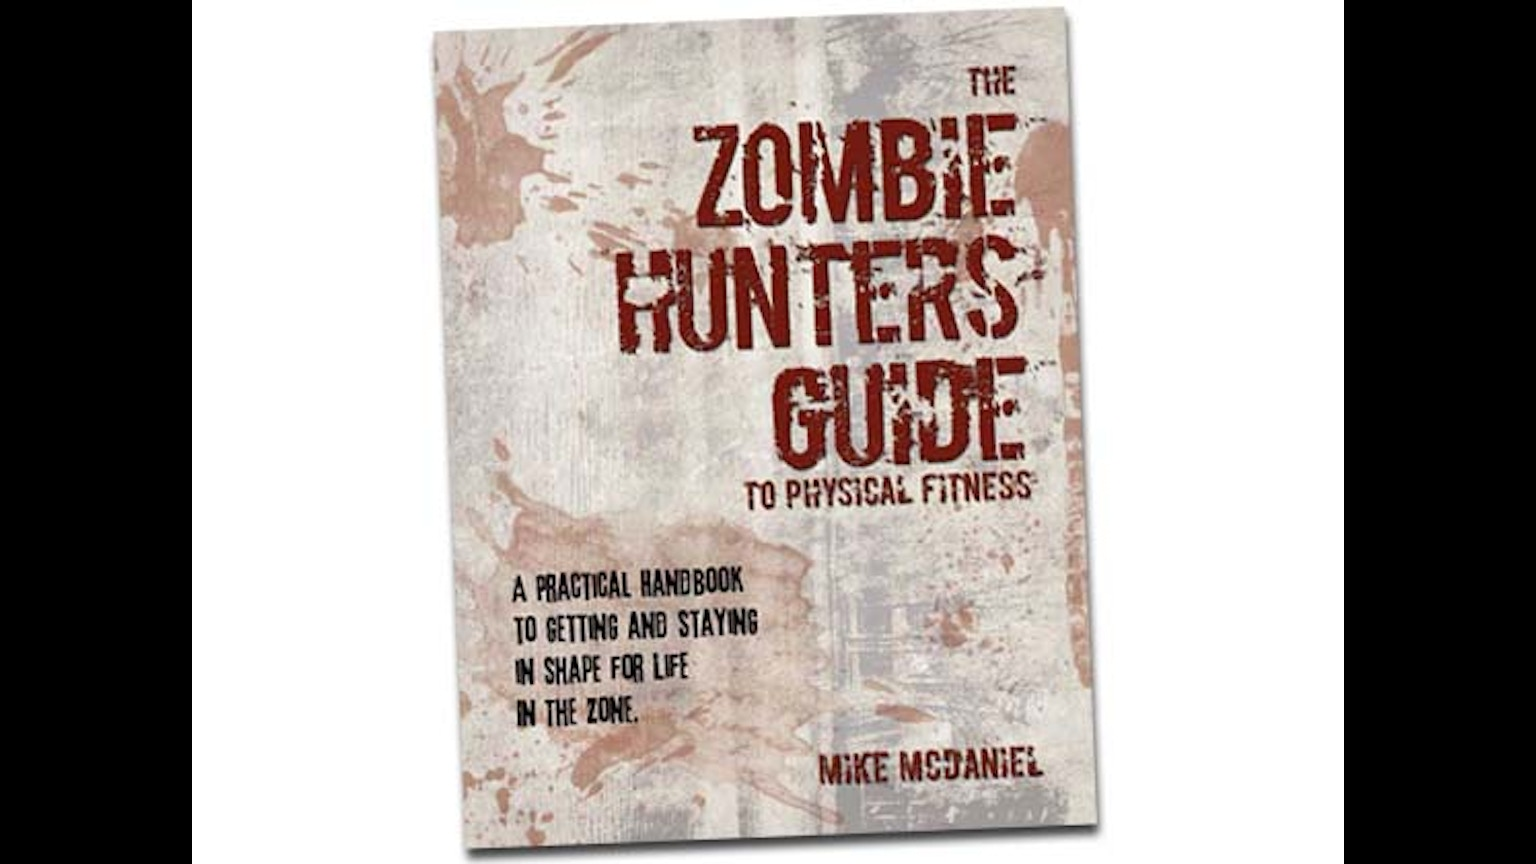 Zombie hunter s guide to physical fitness by mike mcdaniel